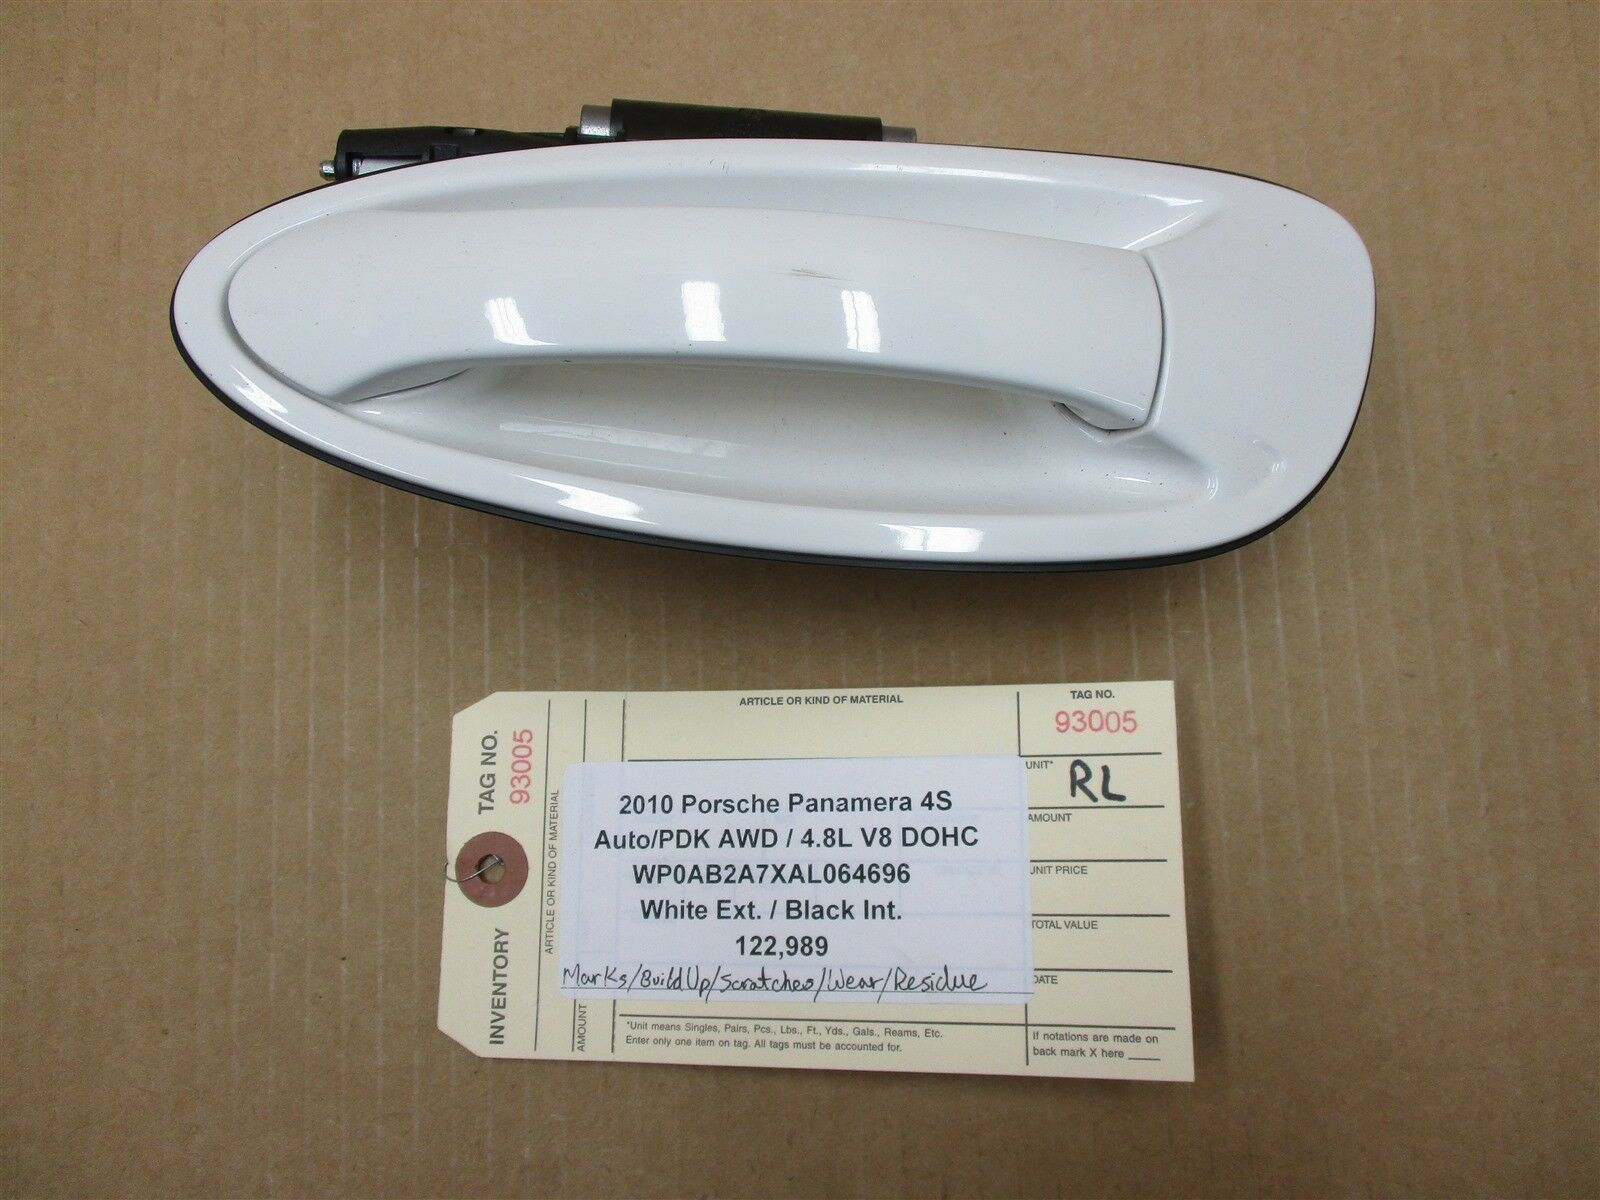 10 Panamera 4S AWD 970 Porsche L REAR EXTERIOR DOOR HANDLE 99753706101 122,989